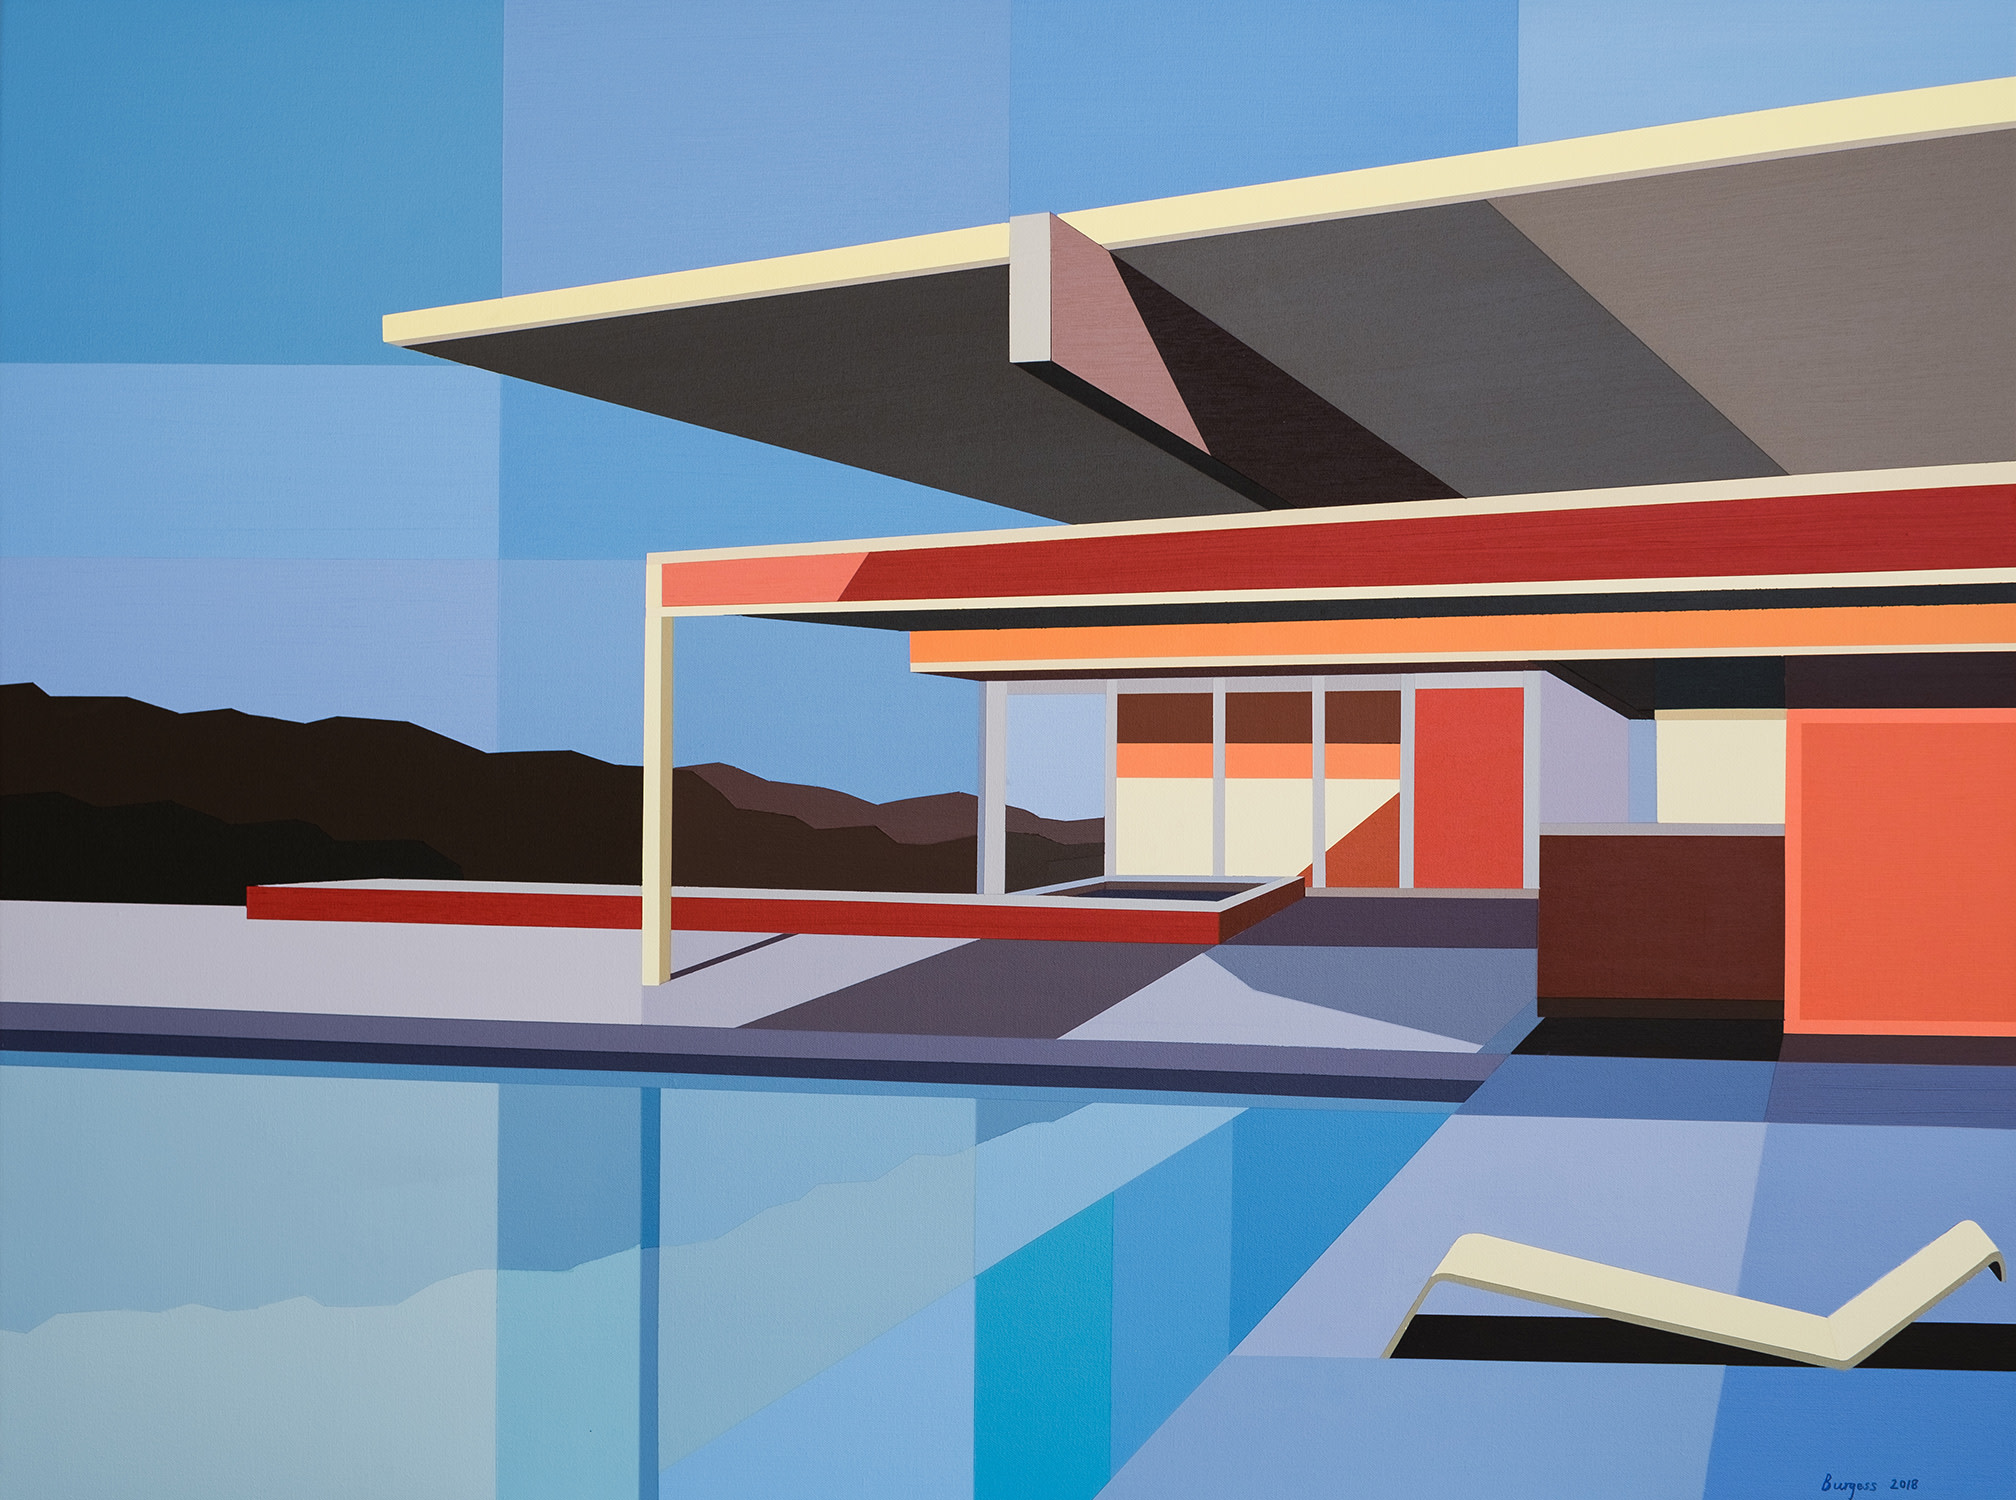 "<span class=""link fancybox-details-link""><a href=""/exhibitions/42/works/artworks3190/"">View Detail Page</a></span><div class=""artist""><strong>Andy Burgess</strong></div><div class=""title""><em>Re-Imagined Neutra III - Chuey House</em>, 2019</div><div class=""signed_and_dated"">Signed, dated recto</div><div class=""medium"">Acrylic on Canvas over Panel</div><div class=""dimensions"">76.2 x 101.6 cm<br>30 x 40 in.</div>"